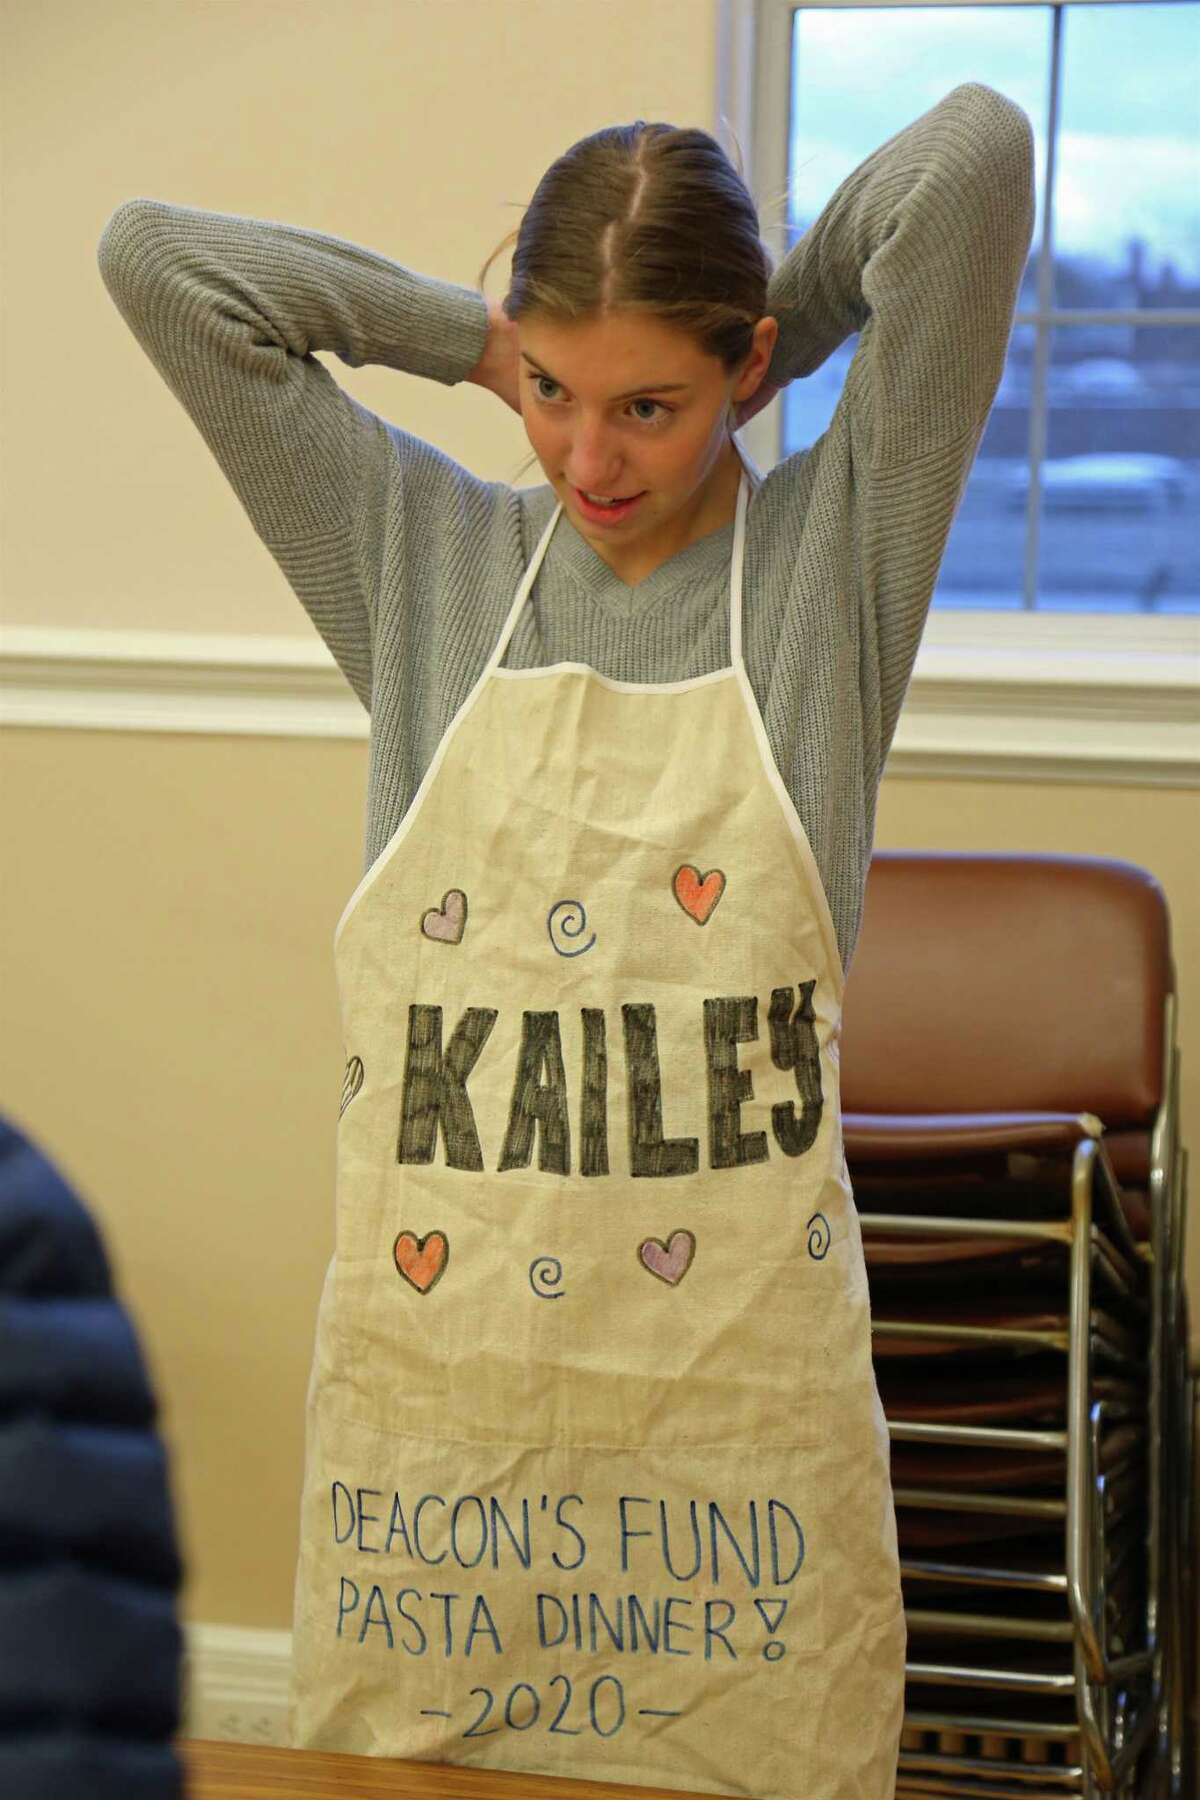 Kailey Wackerman, 14, of Fairfield, suits up for the 9th annual Deacons' Fund Pasta Dinner at First Church Congregational on Sunday, Jan. 26, 2020, in Fairfield, Conn.